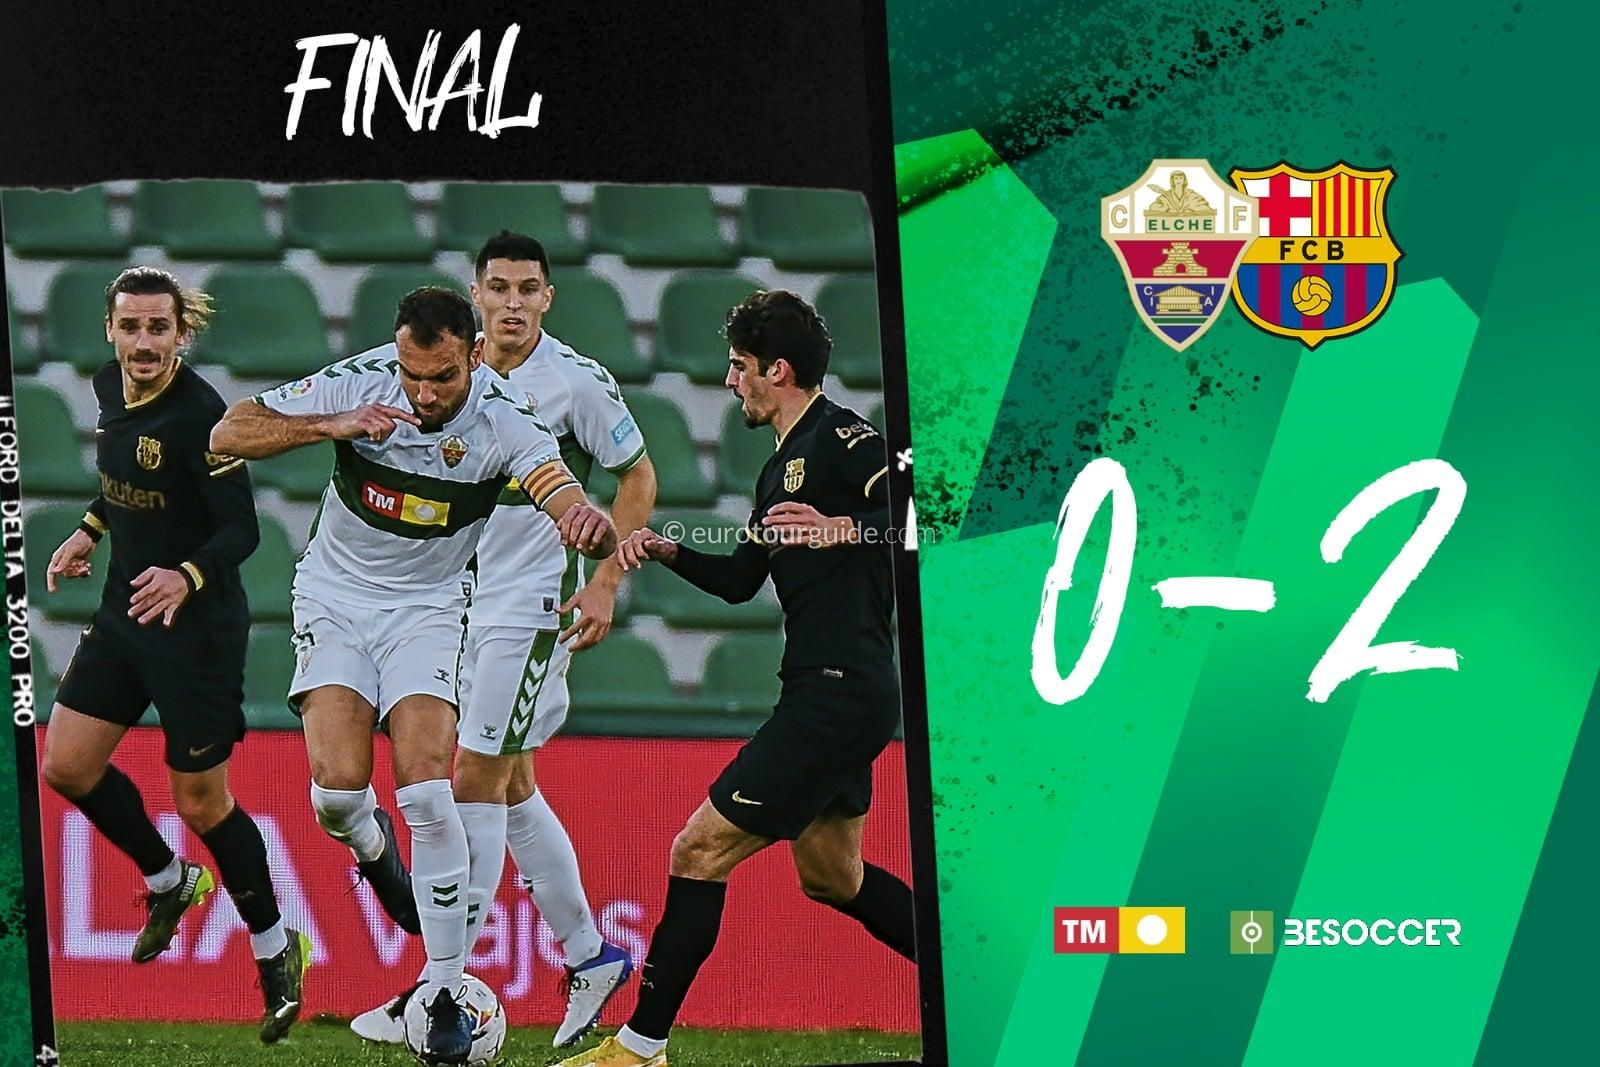 EuroTourGuide Elche CF Match Report v Valladolid and Barcelona 2021